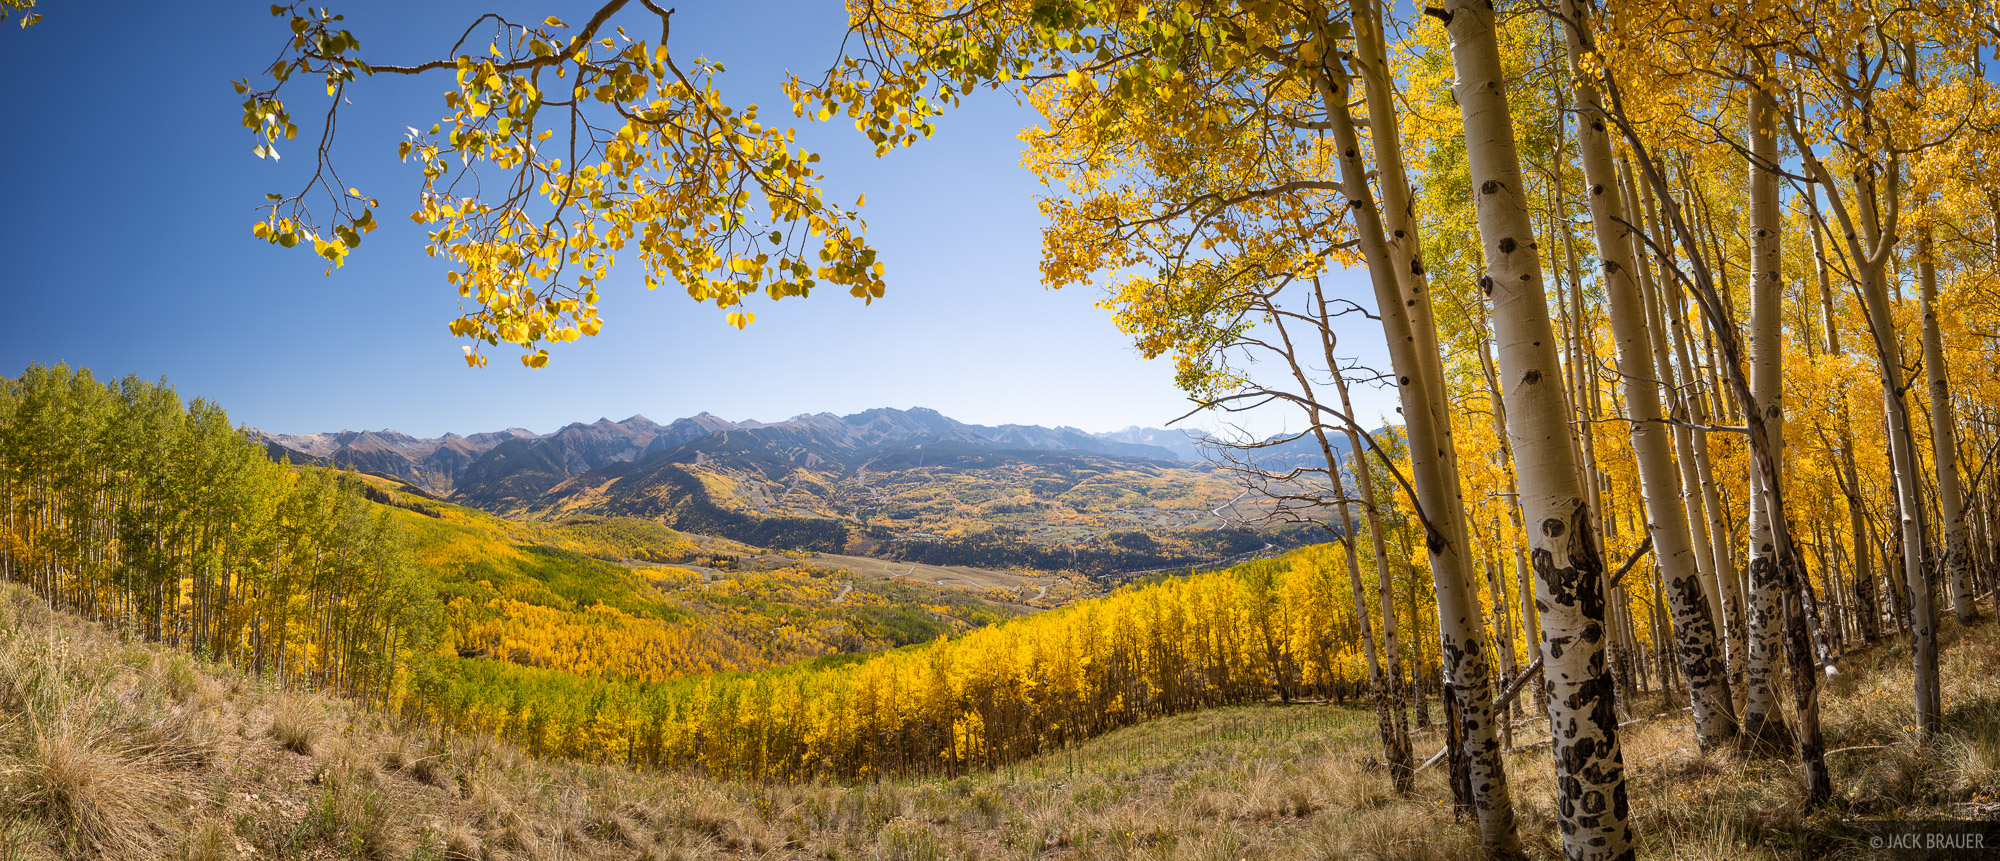 A panoramic view of golden aspens above the valley of Telluride on a crisp, clear autumn day at the end of September. Mountain...